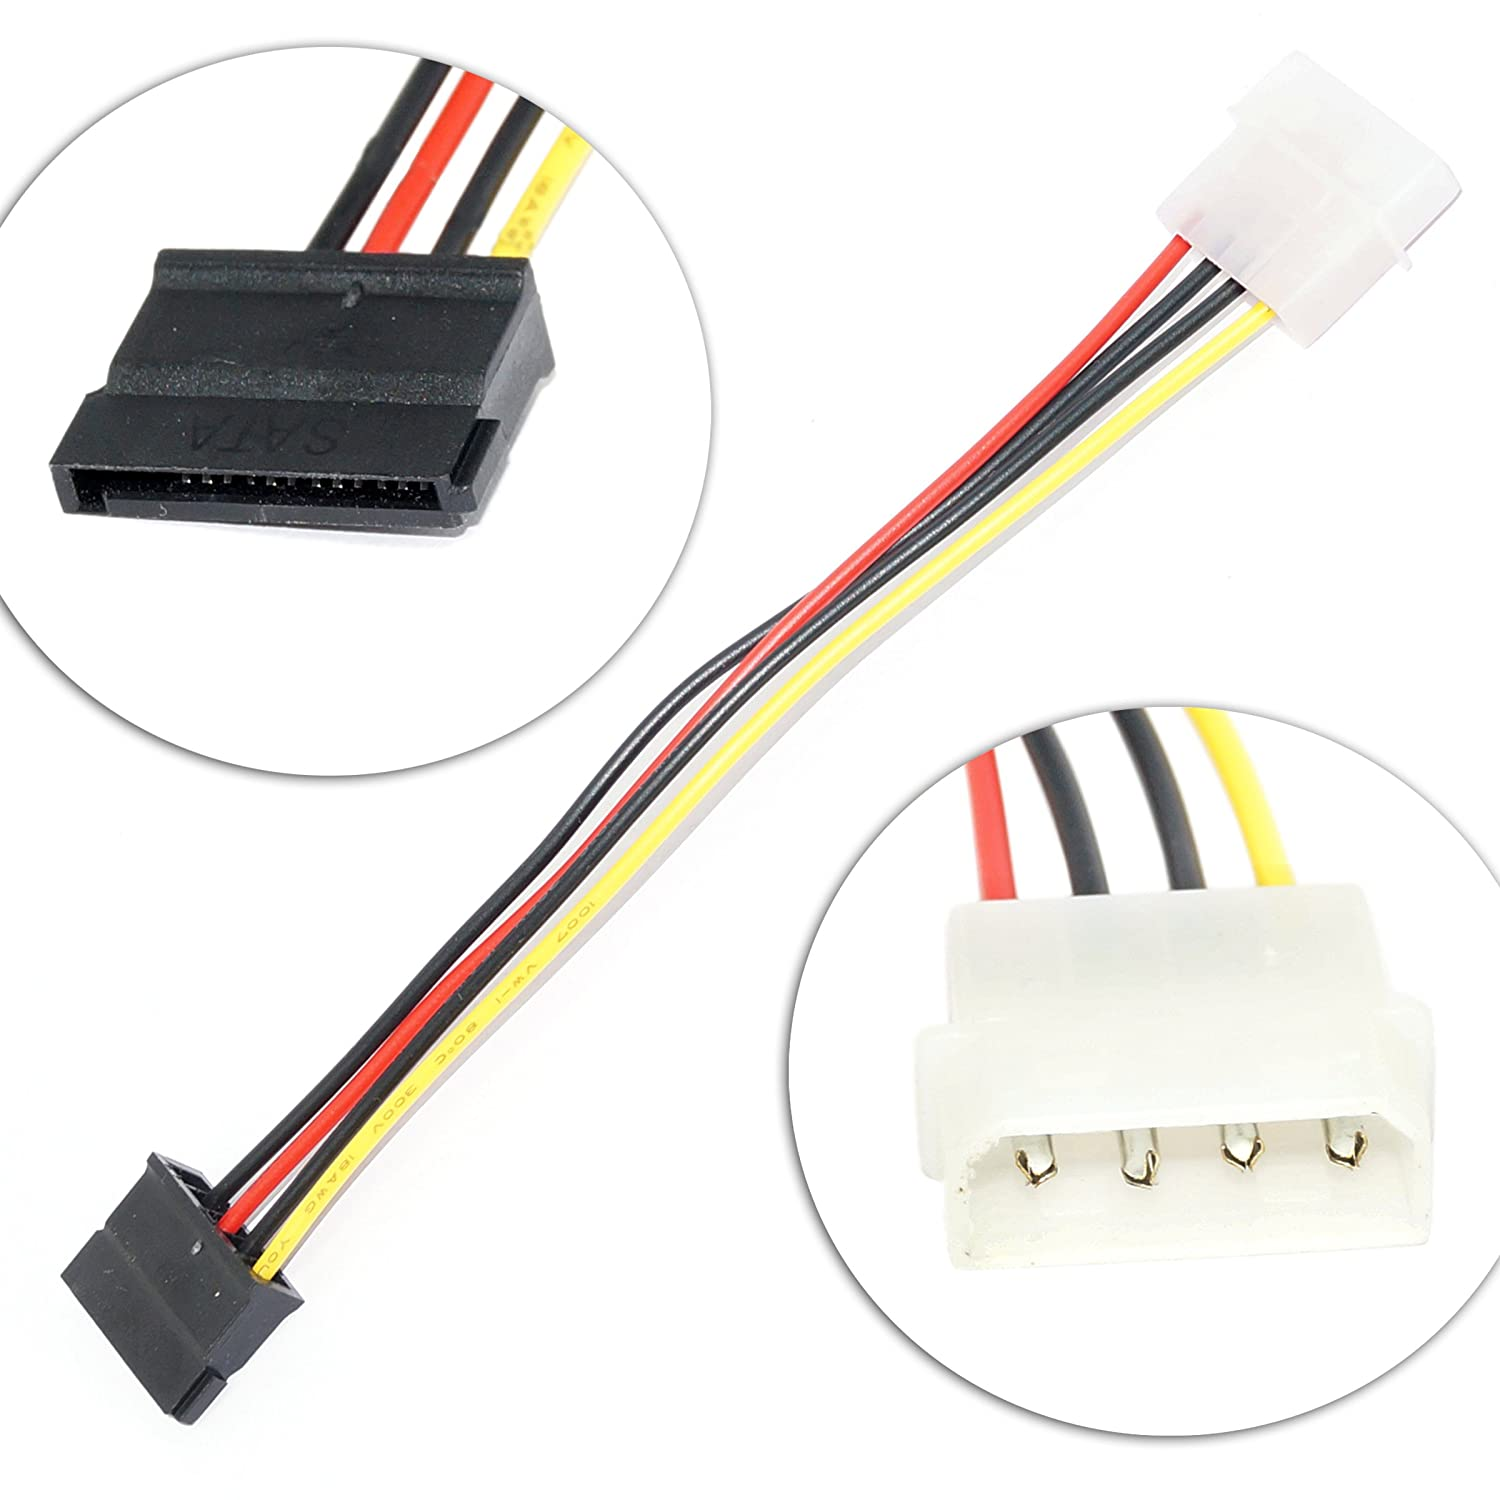 5 X Sata Power Cable 6inch 4 Pin Molex To Slimline Ata Connector 6 Adapter Computers Accessories